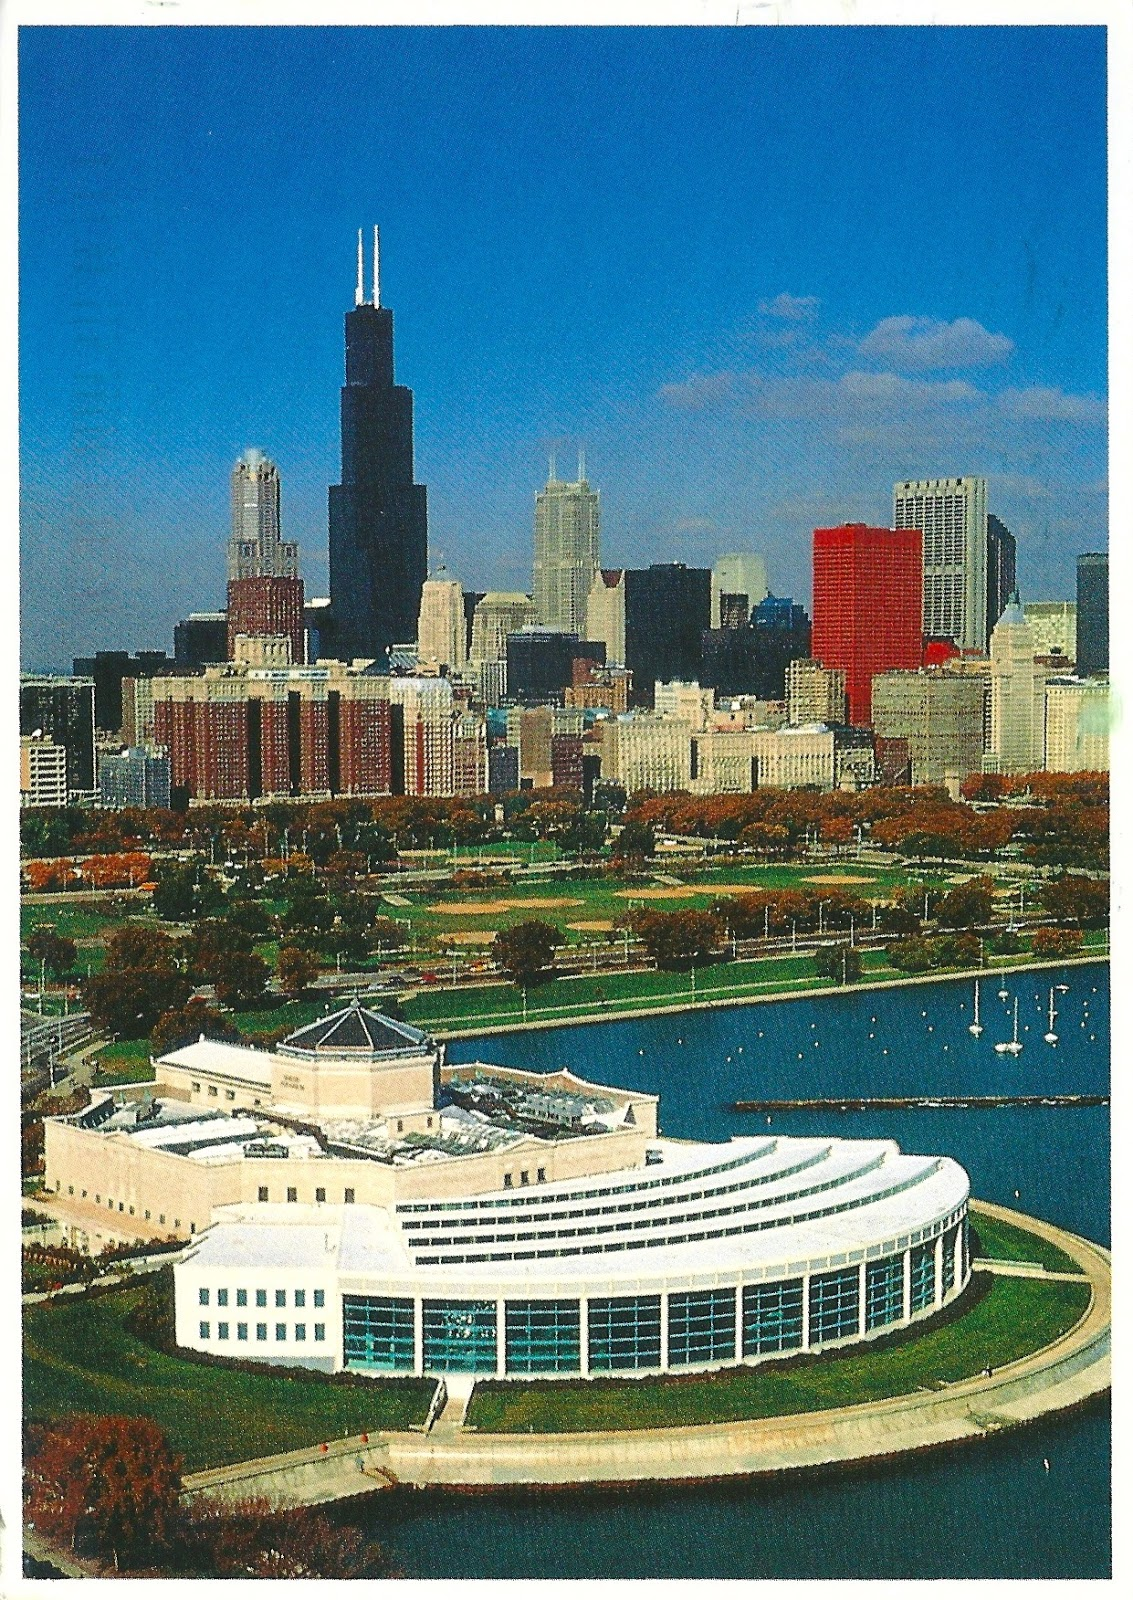 My Favorite Views Aerial View Of Shedd Aquarium In